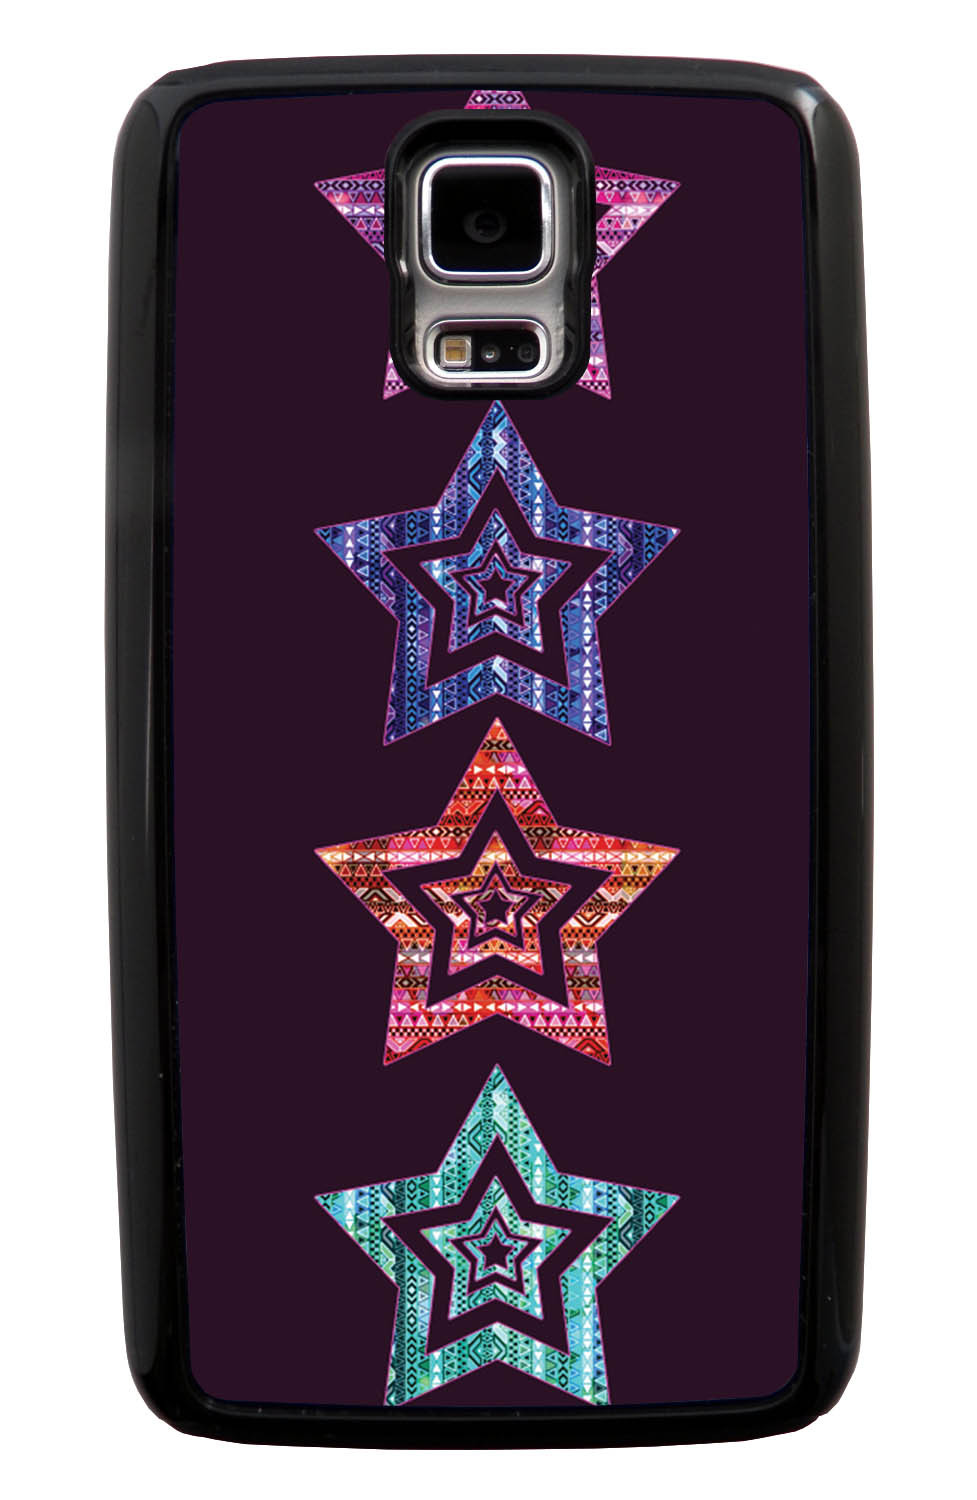 Samsung Galaxy S5 / SV Aztec Case - Patterned Stars - Geometric - Black Tough Hybrid Case